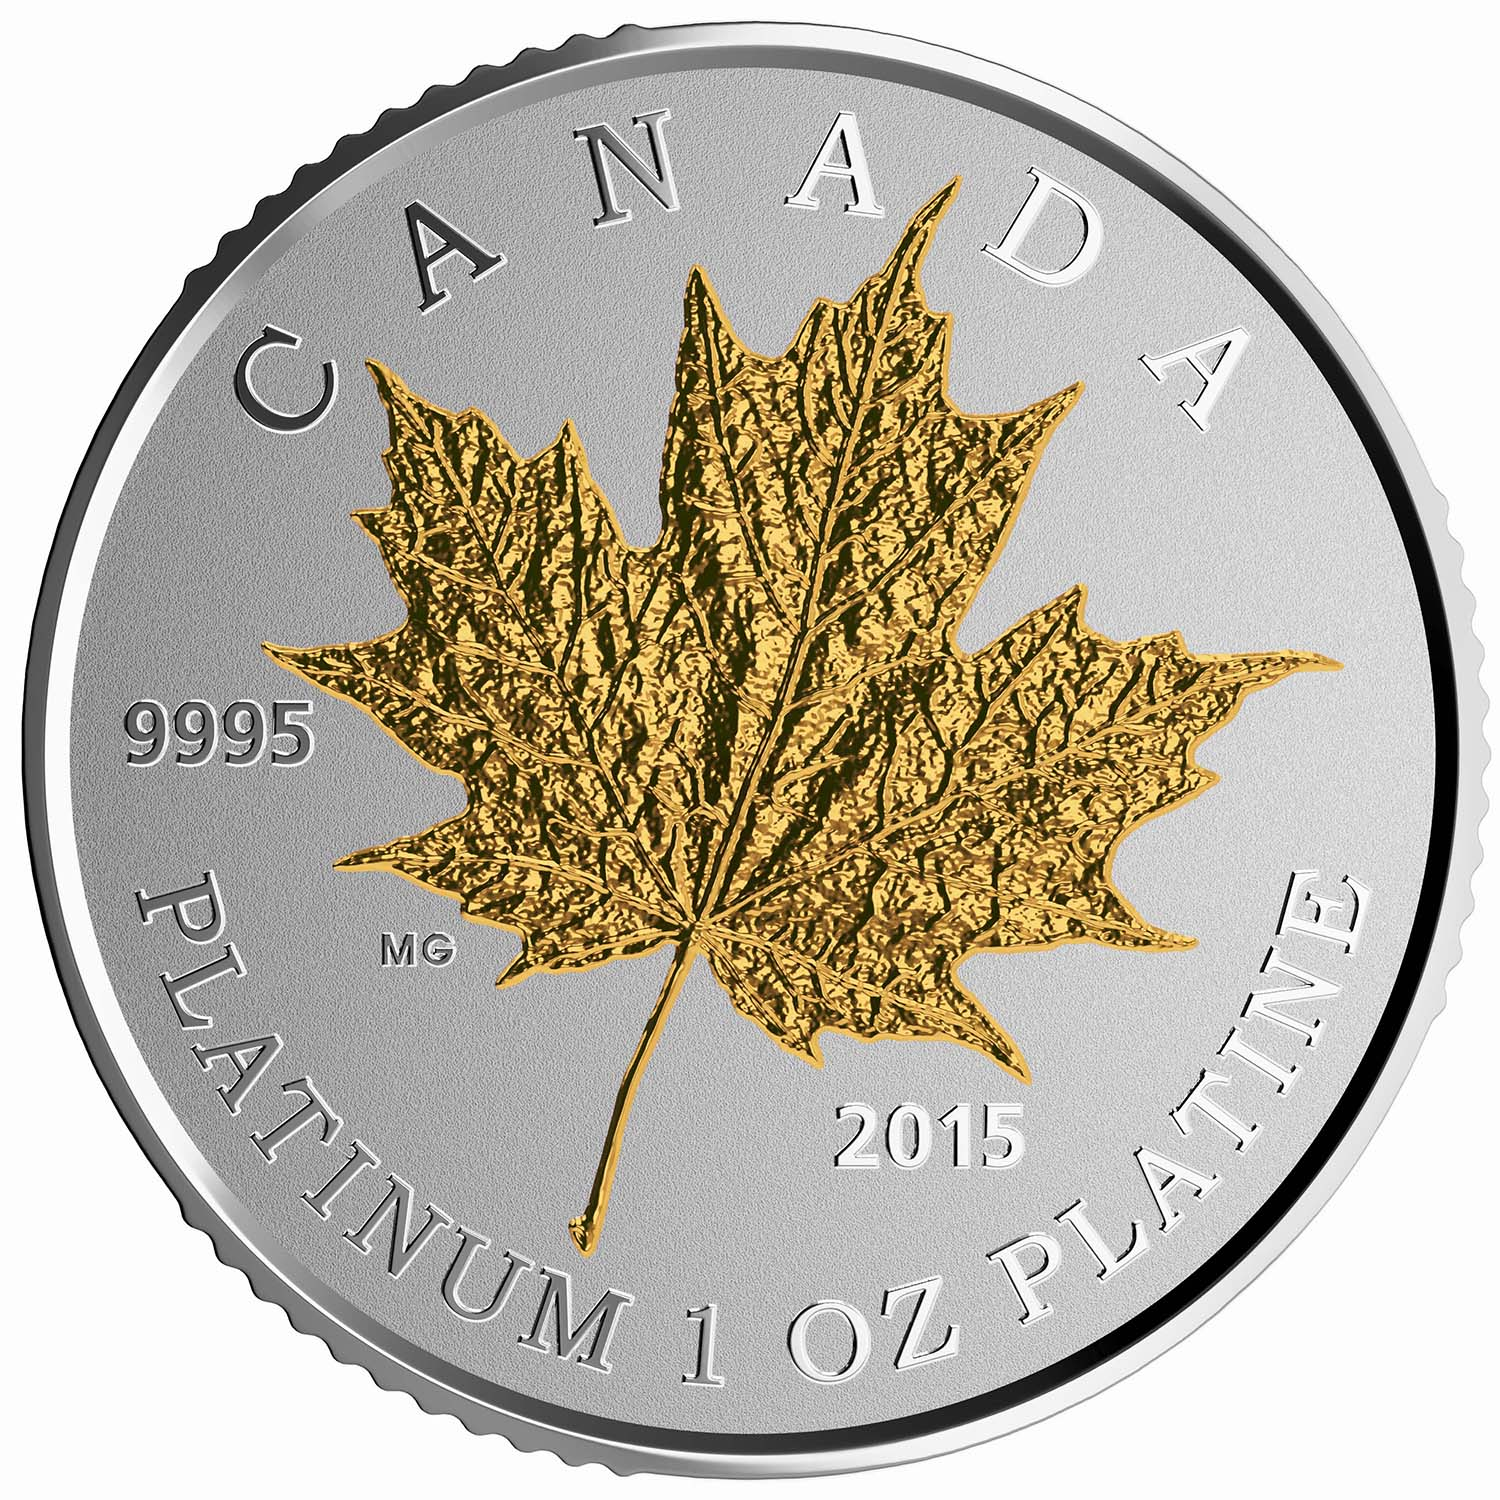 2015 Canada 1 oz Proof Platinum $300 Maple Leaf Forever